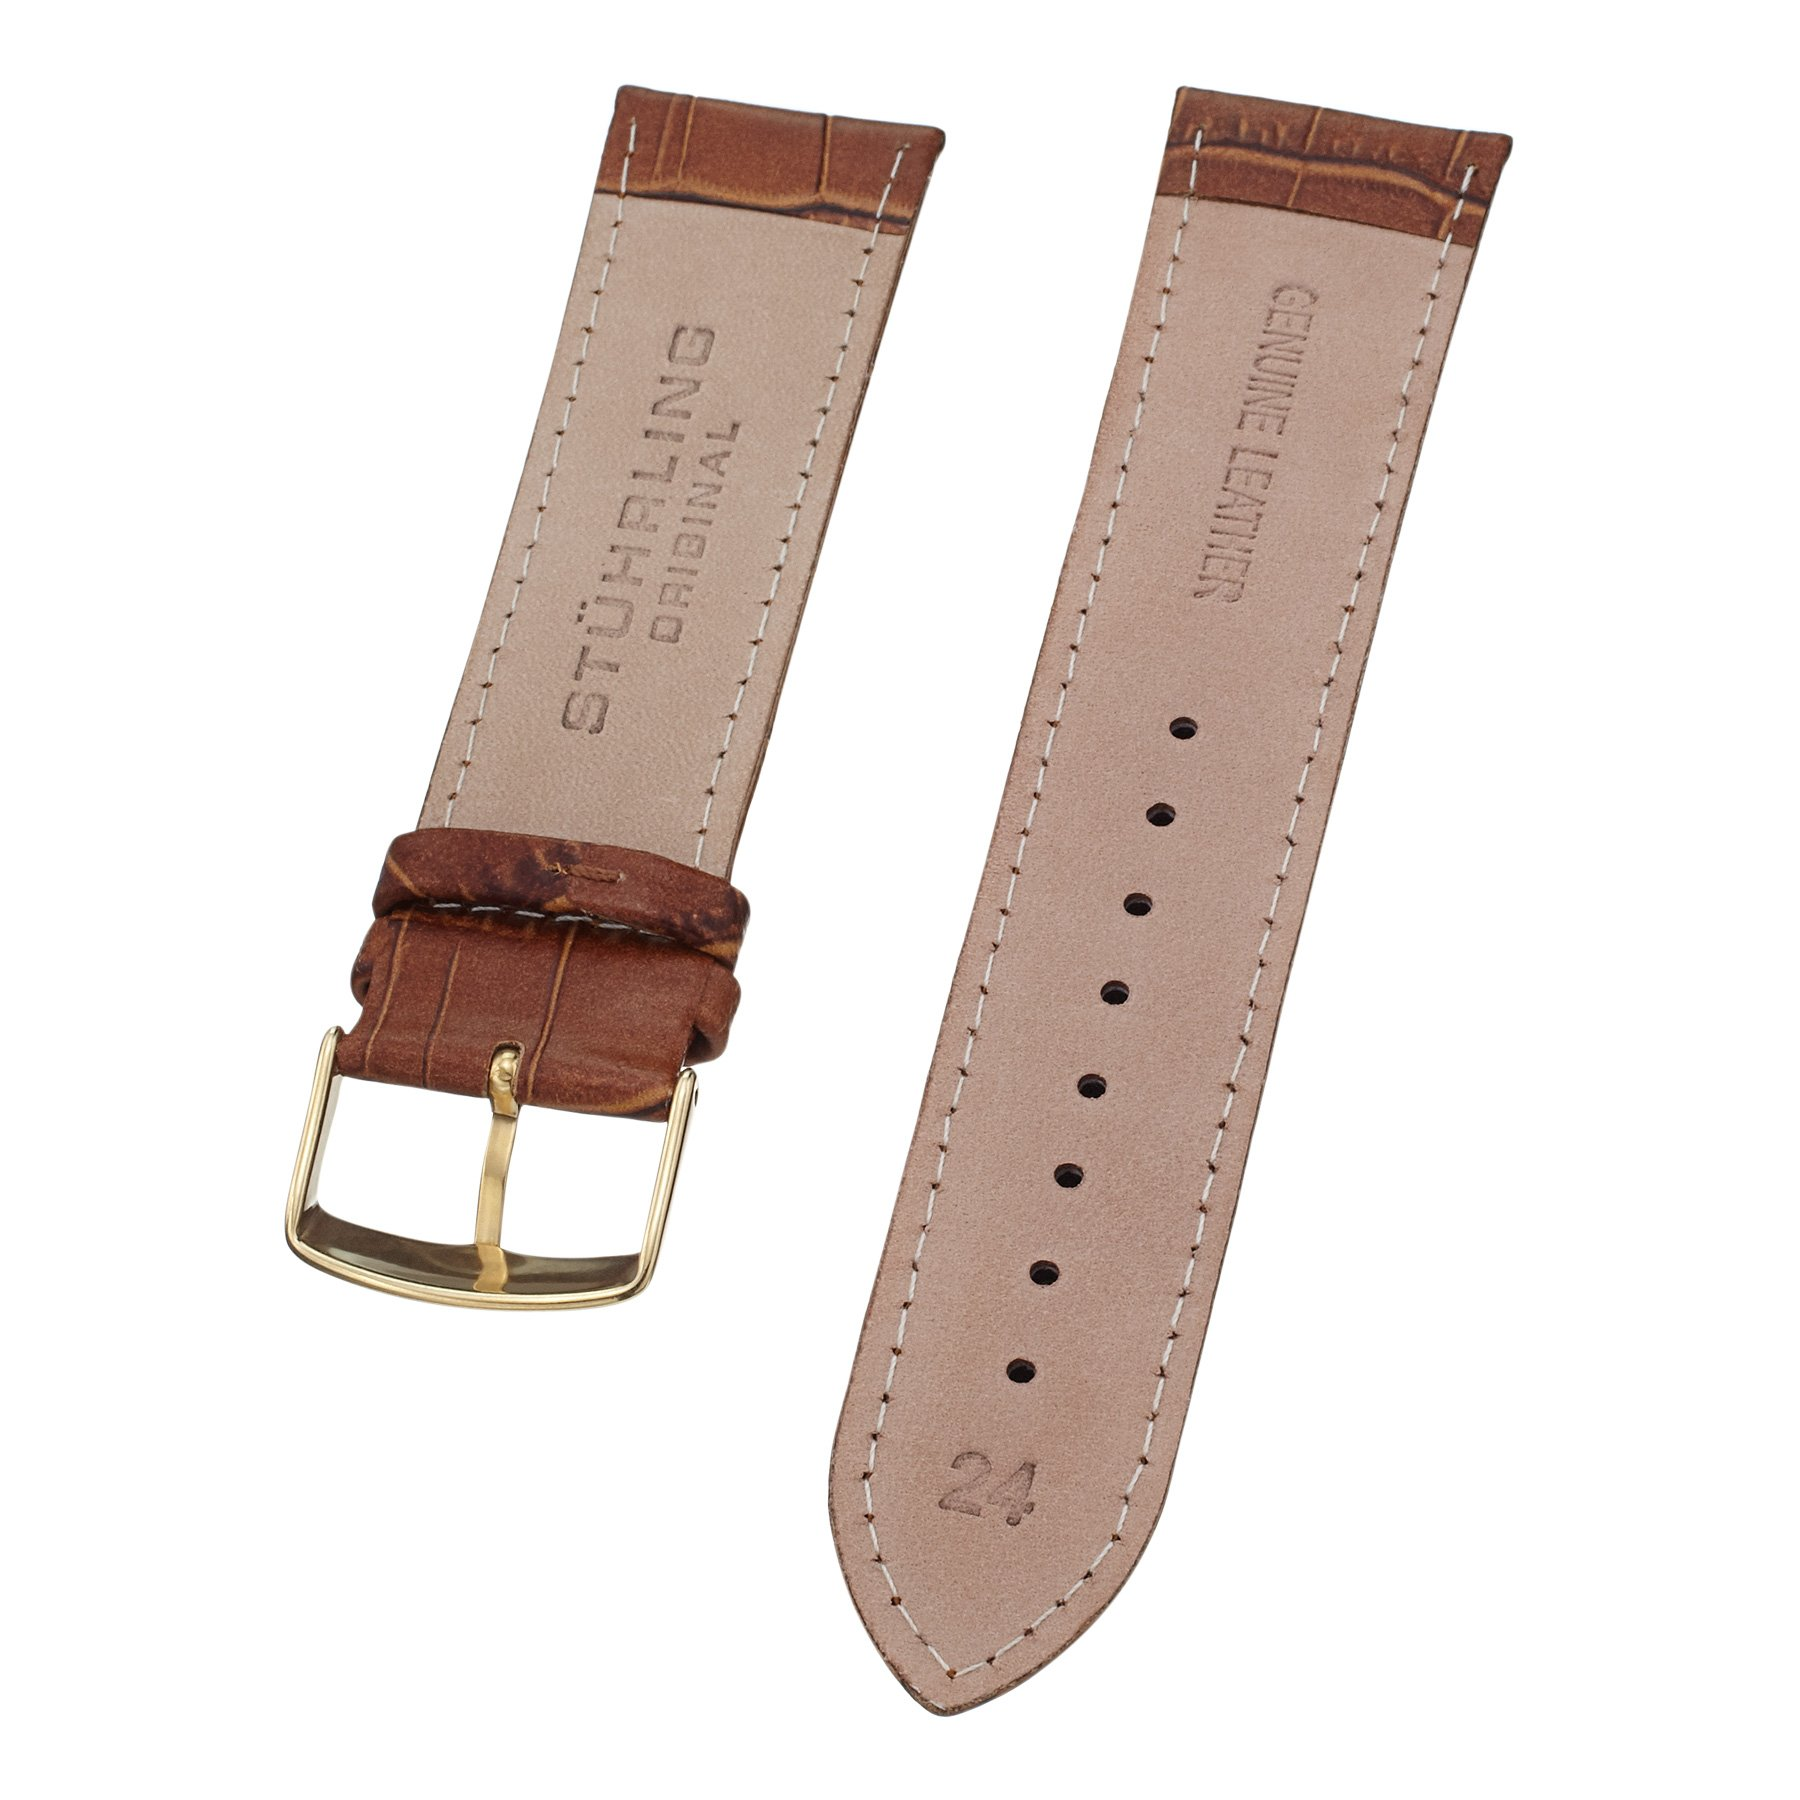 Stuhrling Original Mens 24mm light brown leather watch strap with gold tone buckle st.107BG.3335T2